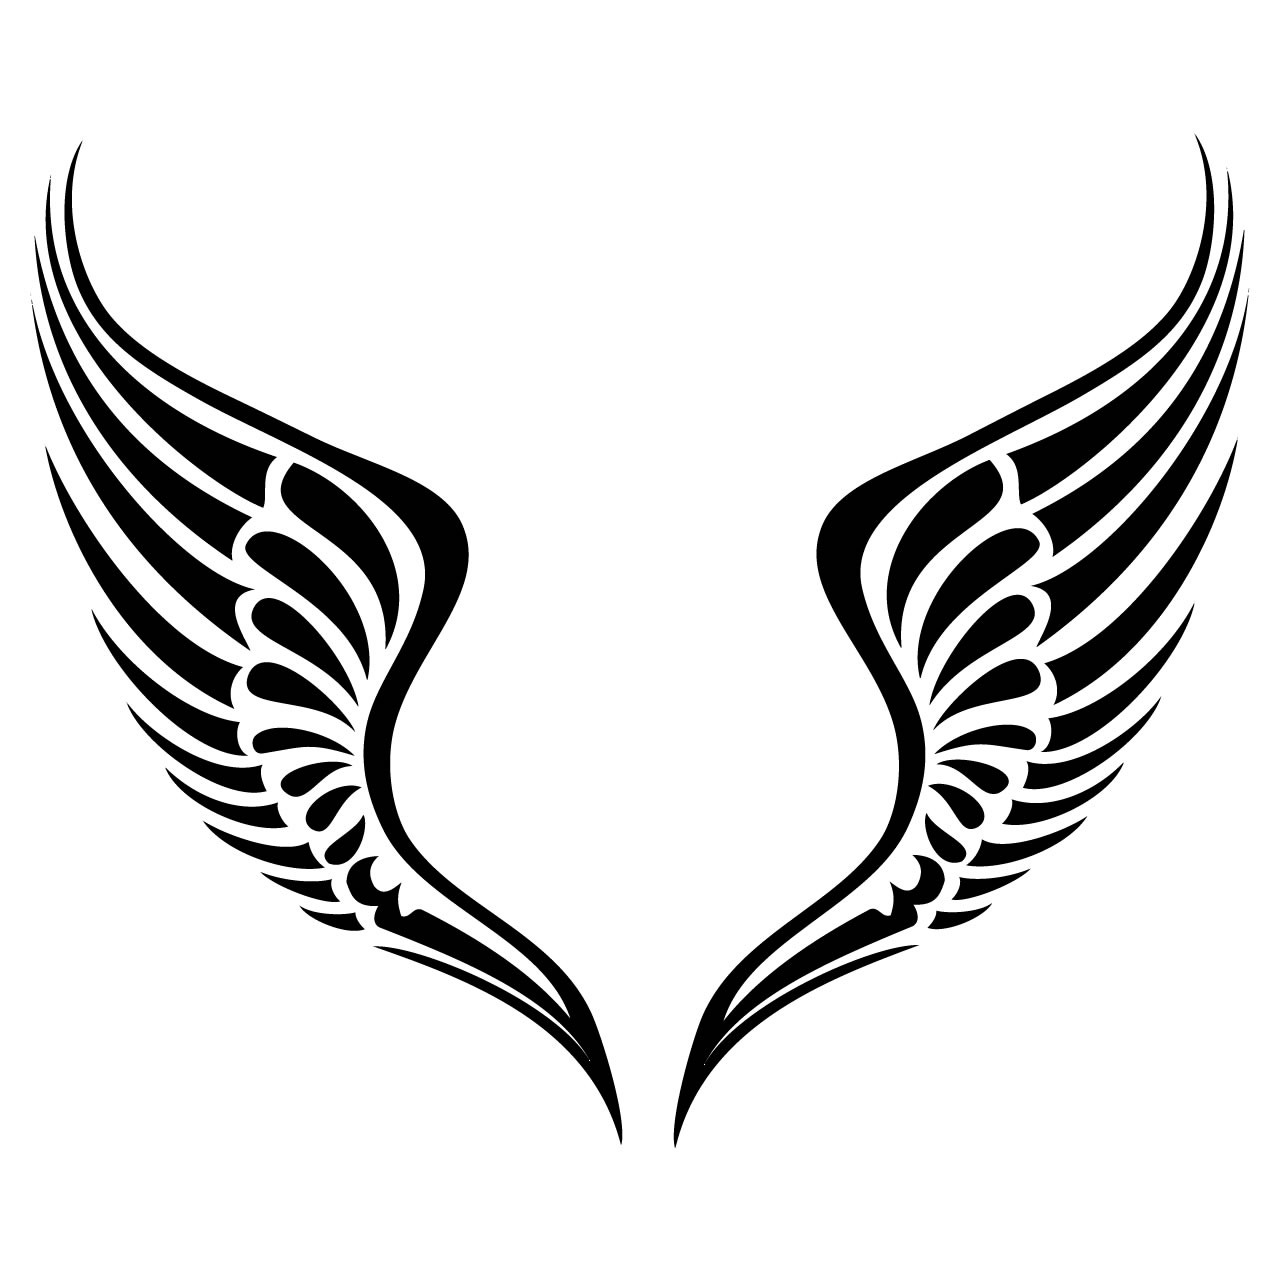 Wings logo clipart image black and white stock Baby Angel Wings Clip Art   Free download best Baby Angel ... image black and white stock